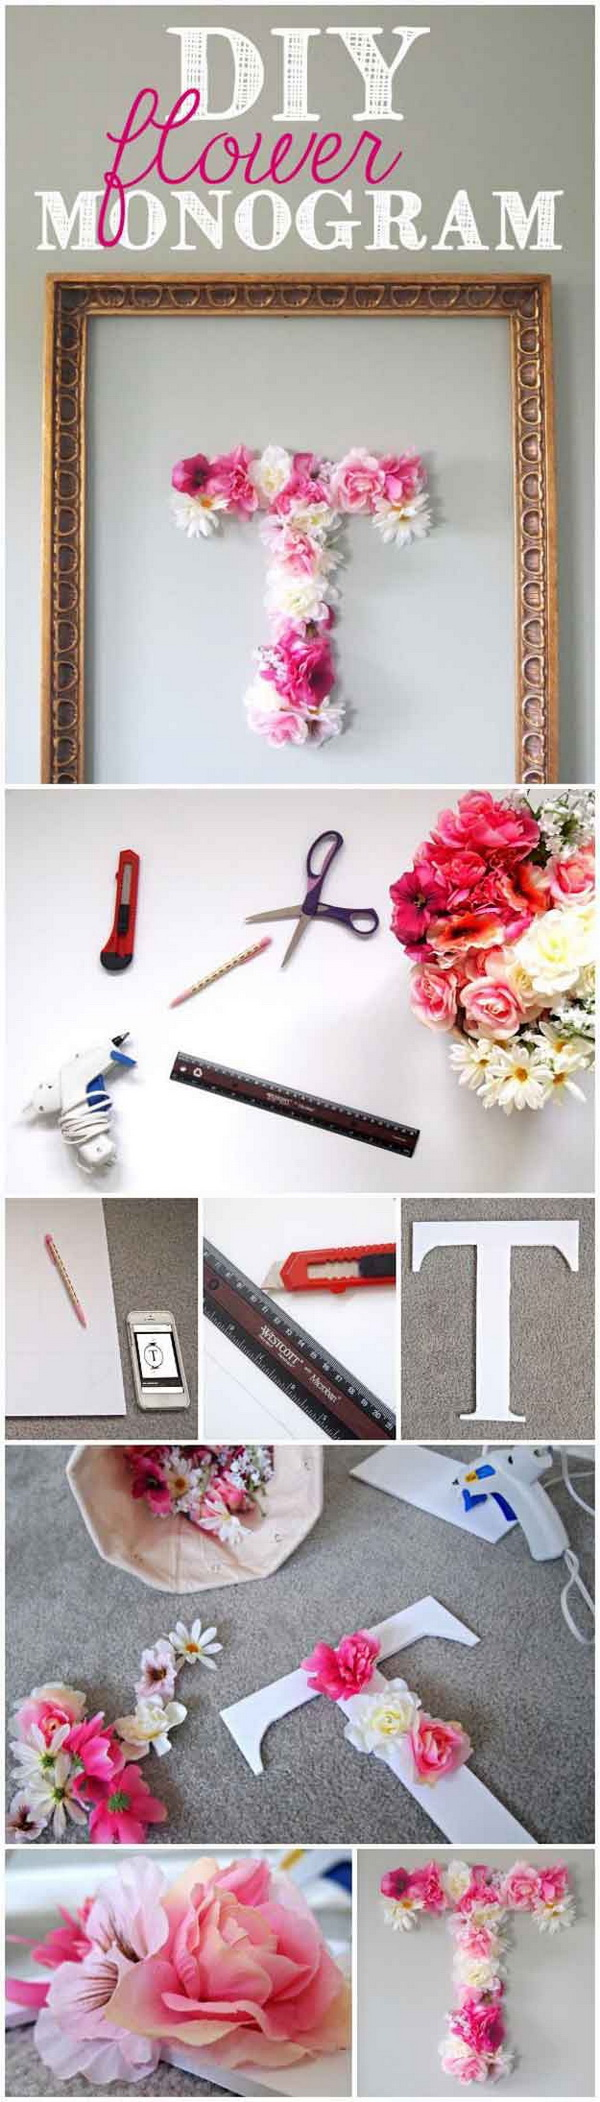 DIY Flower Monogram: This Cute Monogram Made With Faux Flowers Is Easy And  Fun To